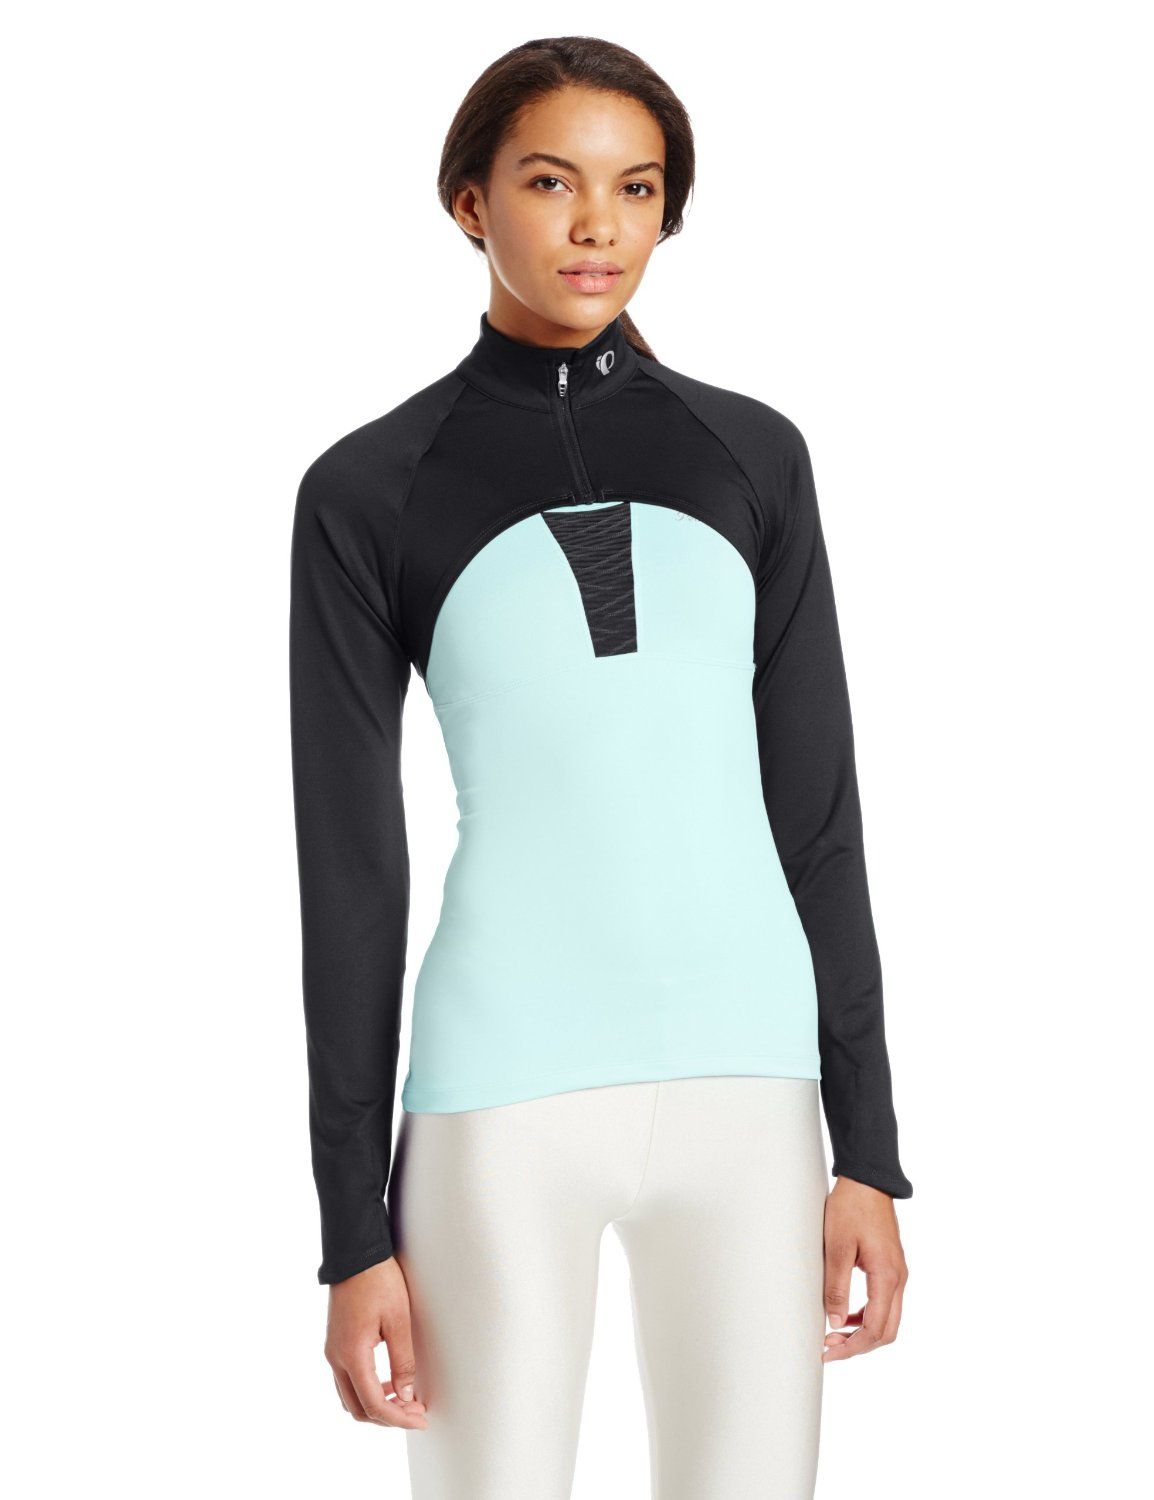 7807f81ee2231 Amazon.com   Pearl Izumi Women s Fly Shrug   Athletic Warm Up And Track  Jackets   Sports   Outdoors